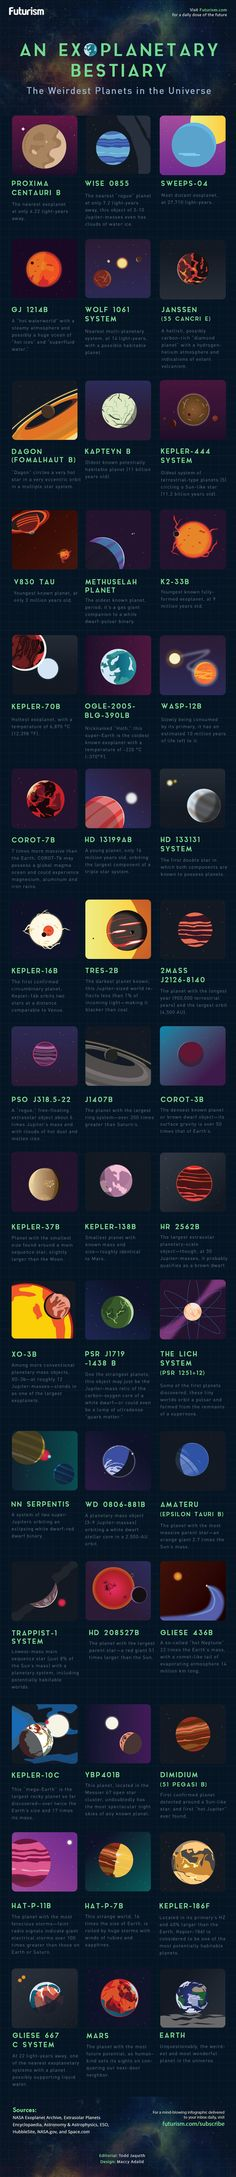 See if your favorite exoplanet made it on Futurism's roster of the strangest planets in the universe.